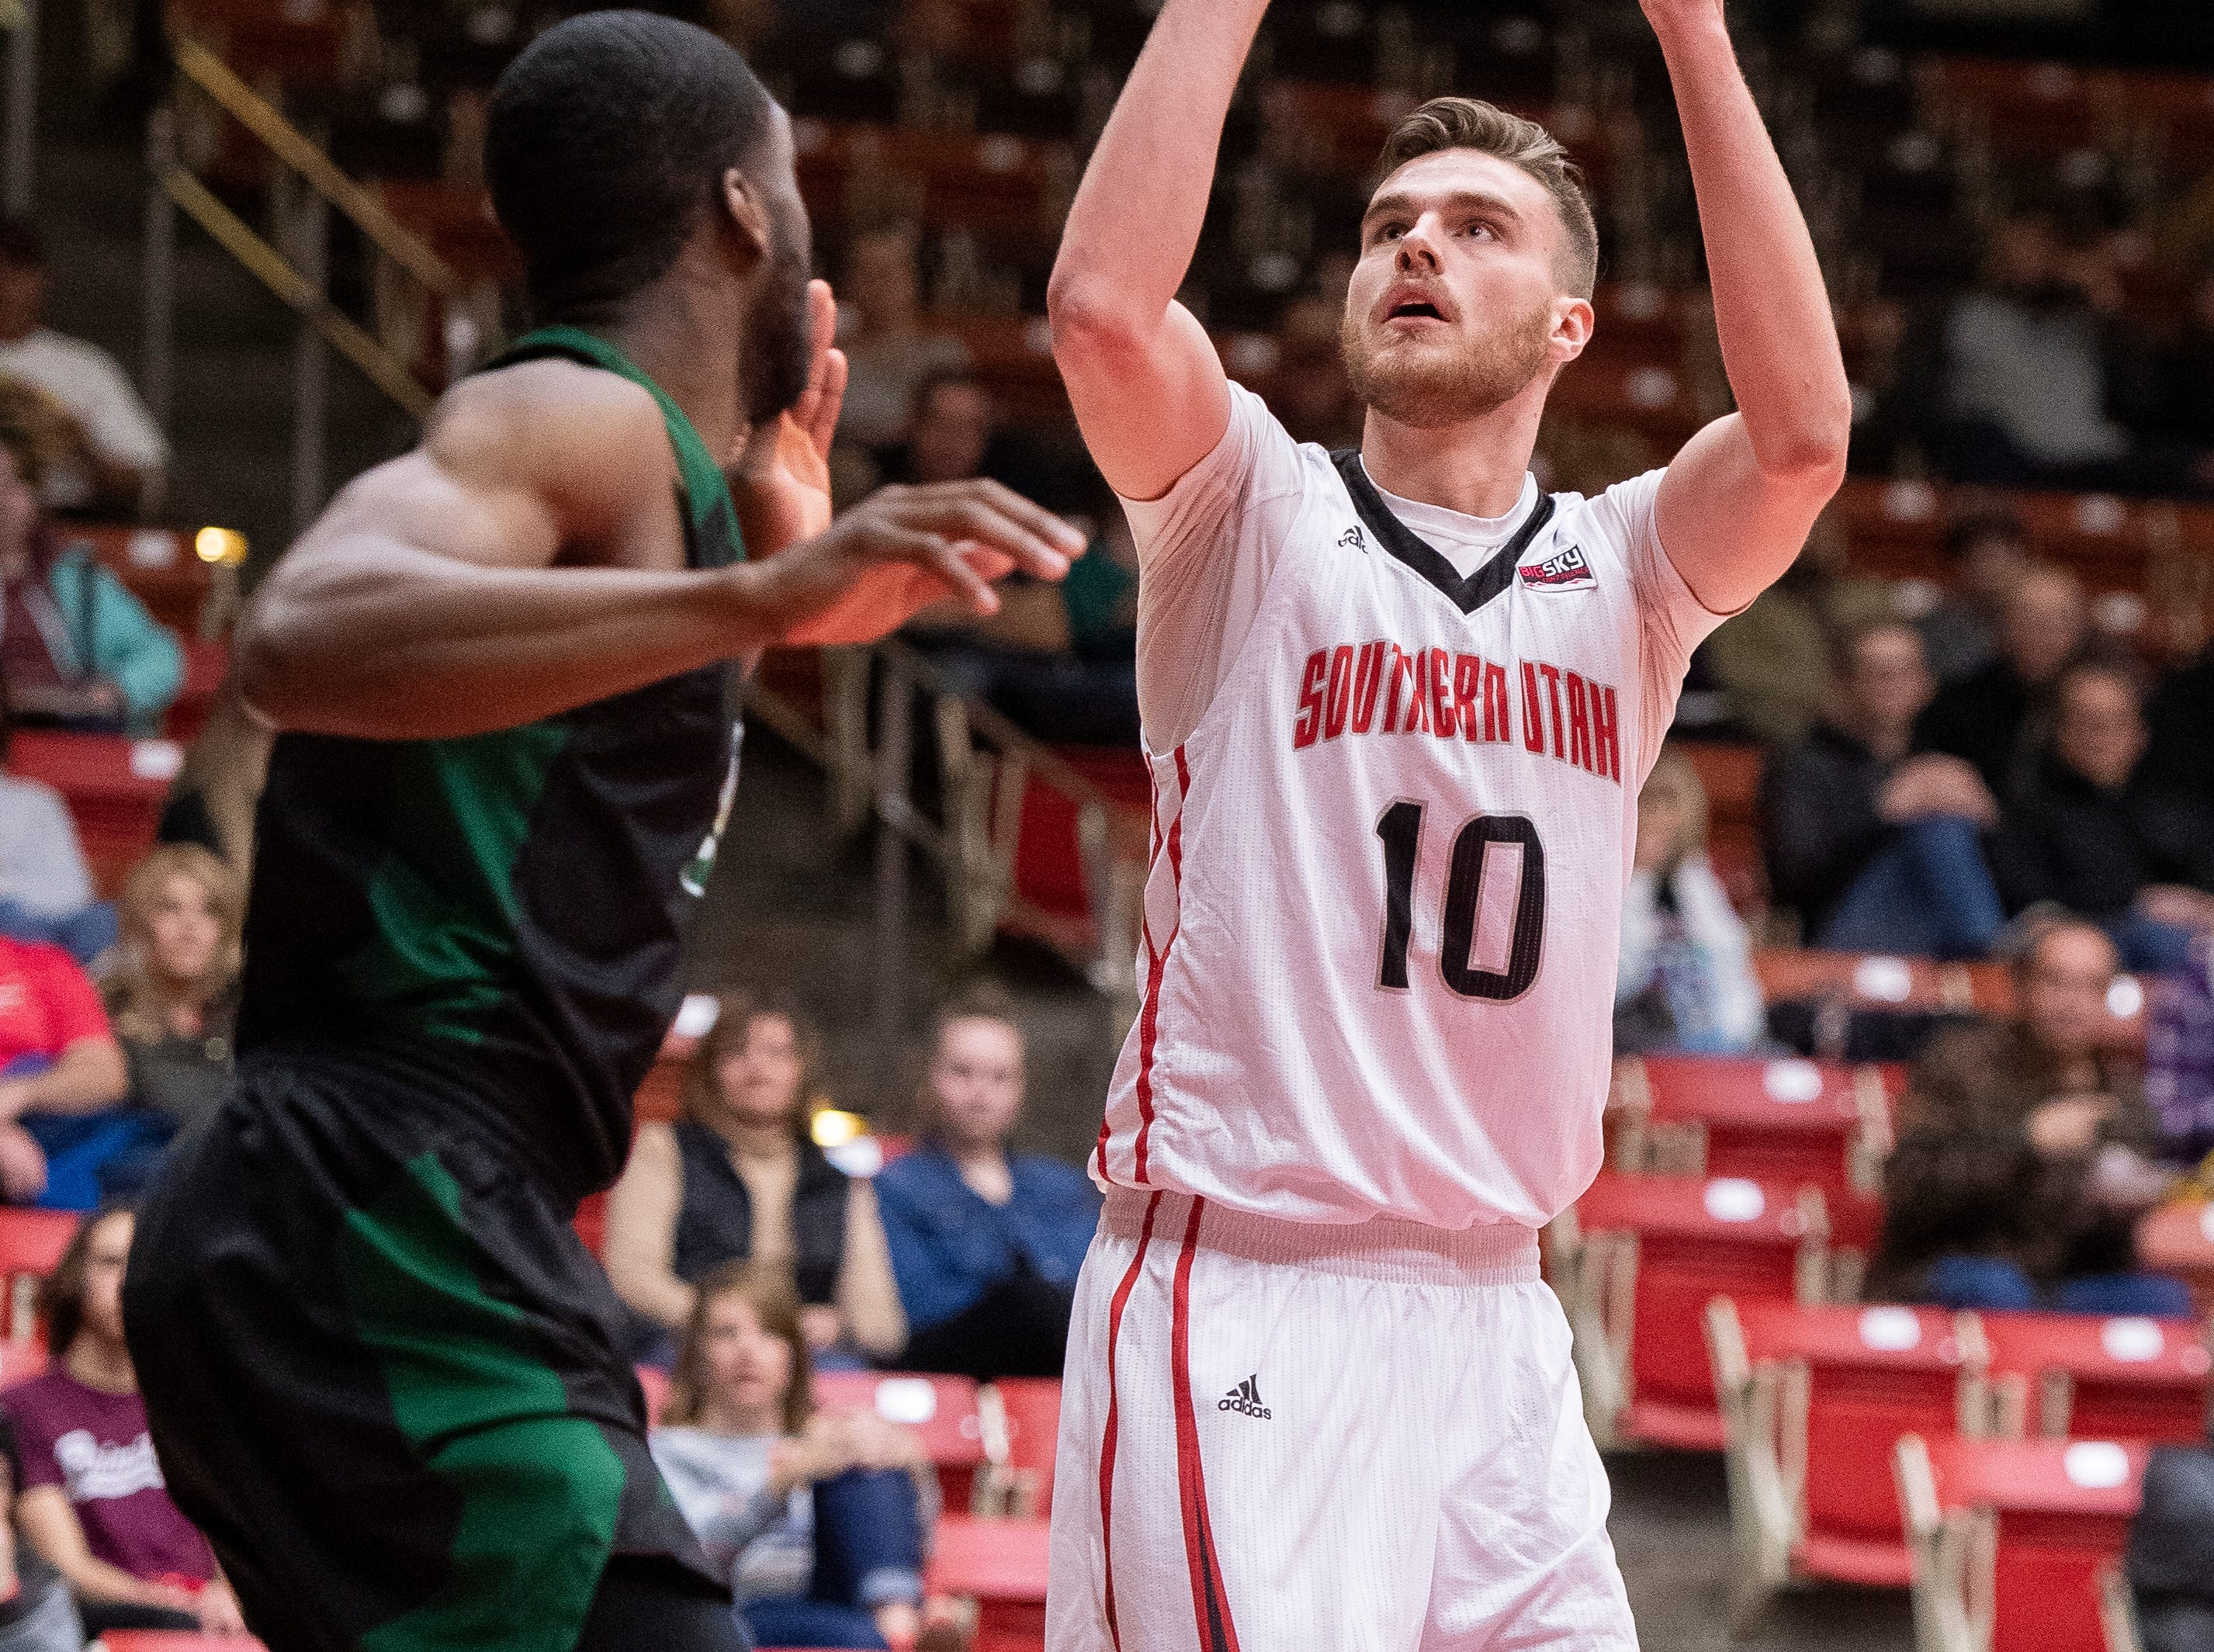 Southern Utah University junior Jacob Calloway (10) takes a shot against Sacramento State in the America First Event Center Saturday, January 19, 2019.